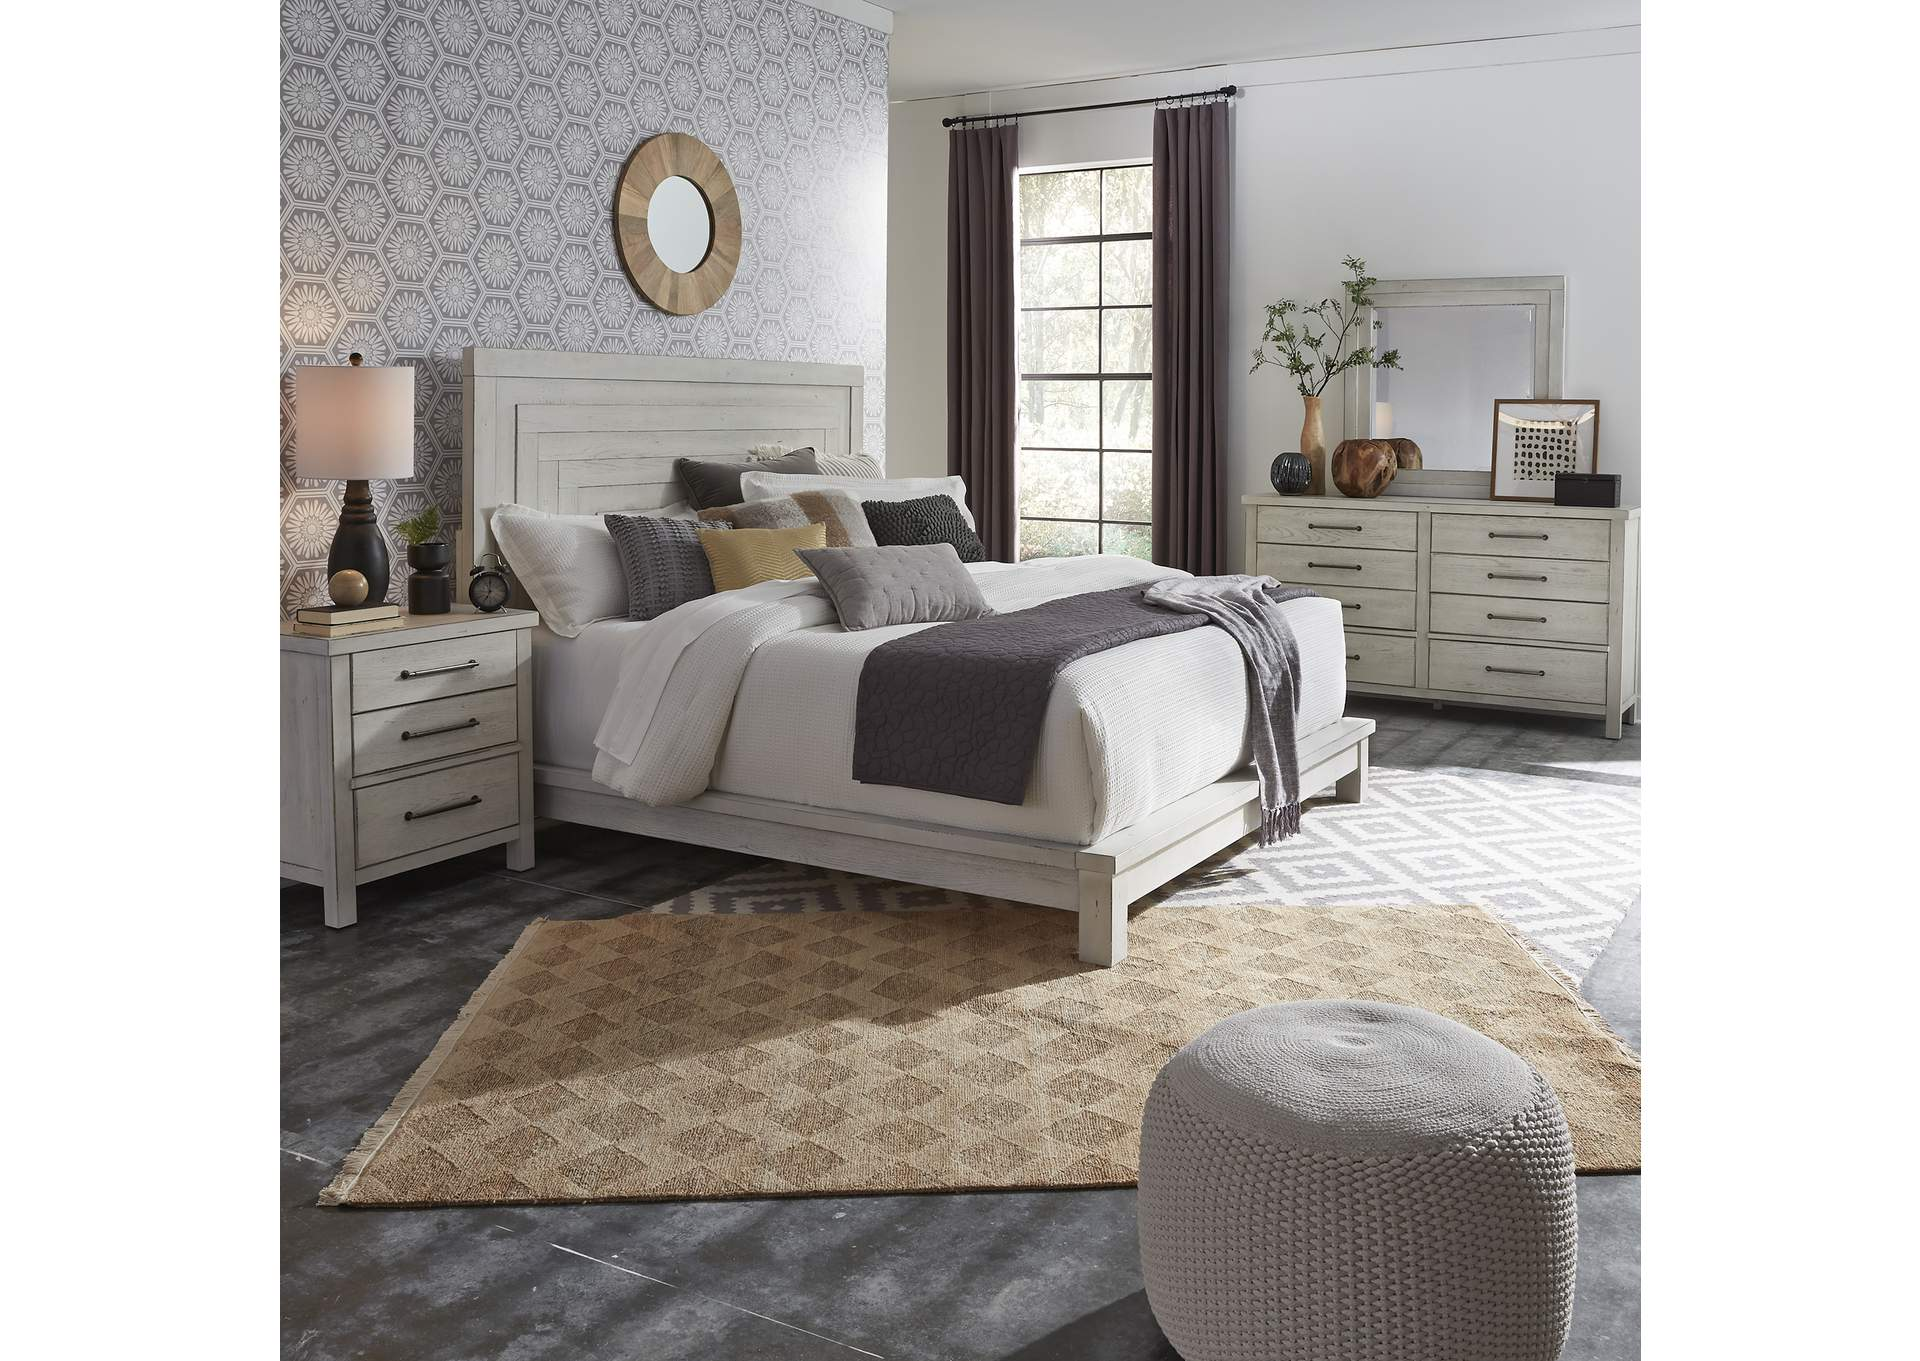 Modern Farmhouse Flea Market White Queen Platform Bed Dresser Mirror Night Stand Jesup Furniture Outlet